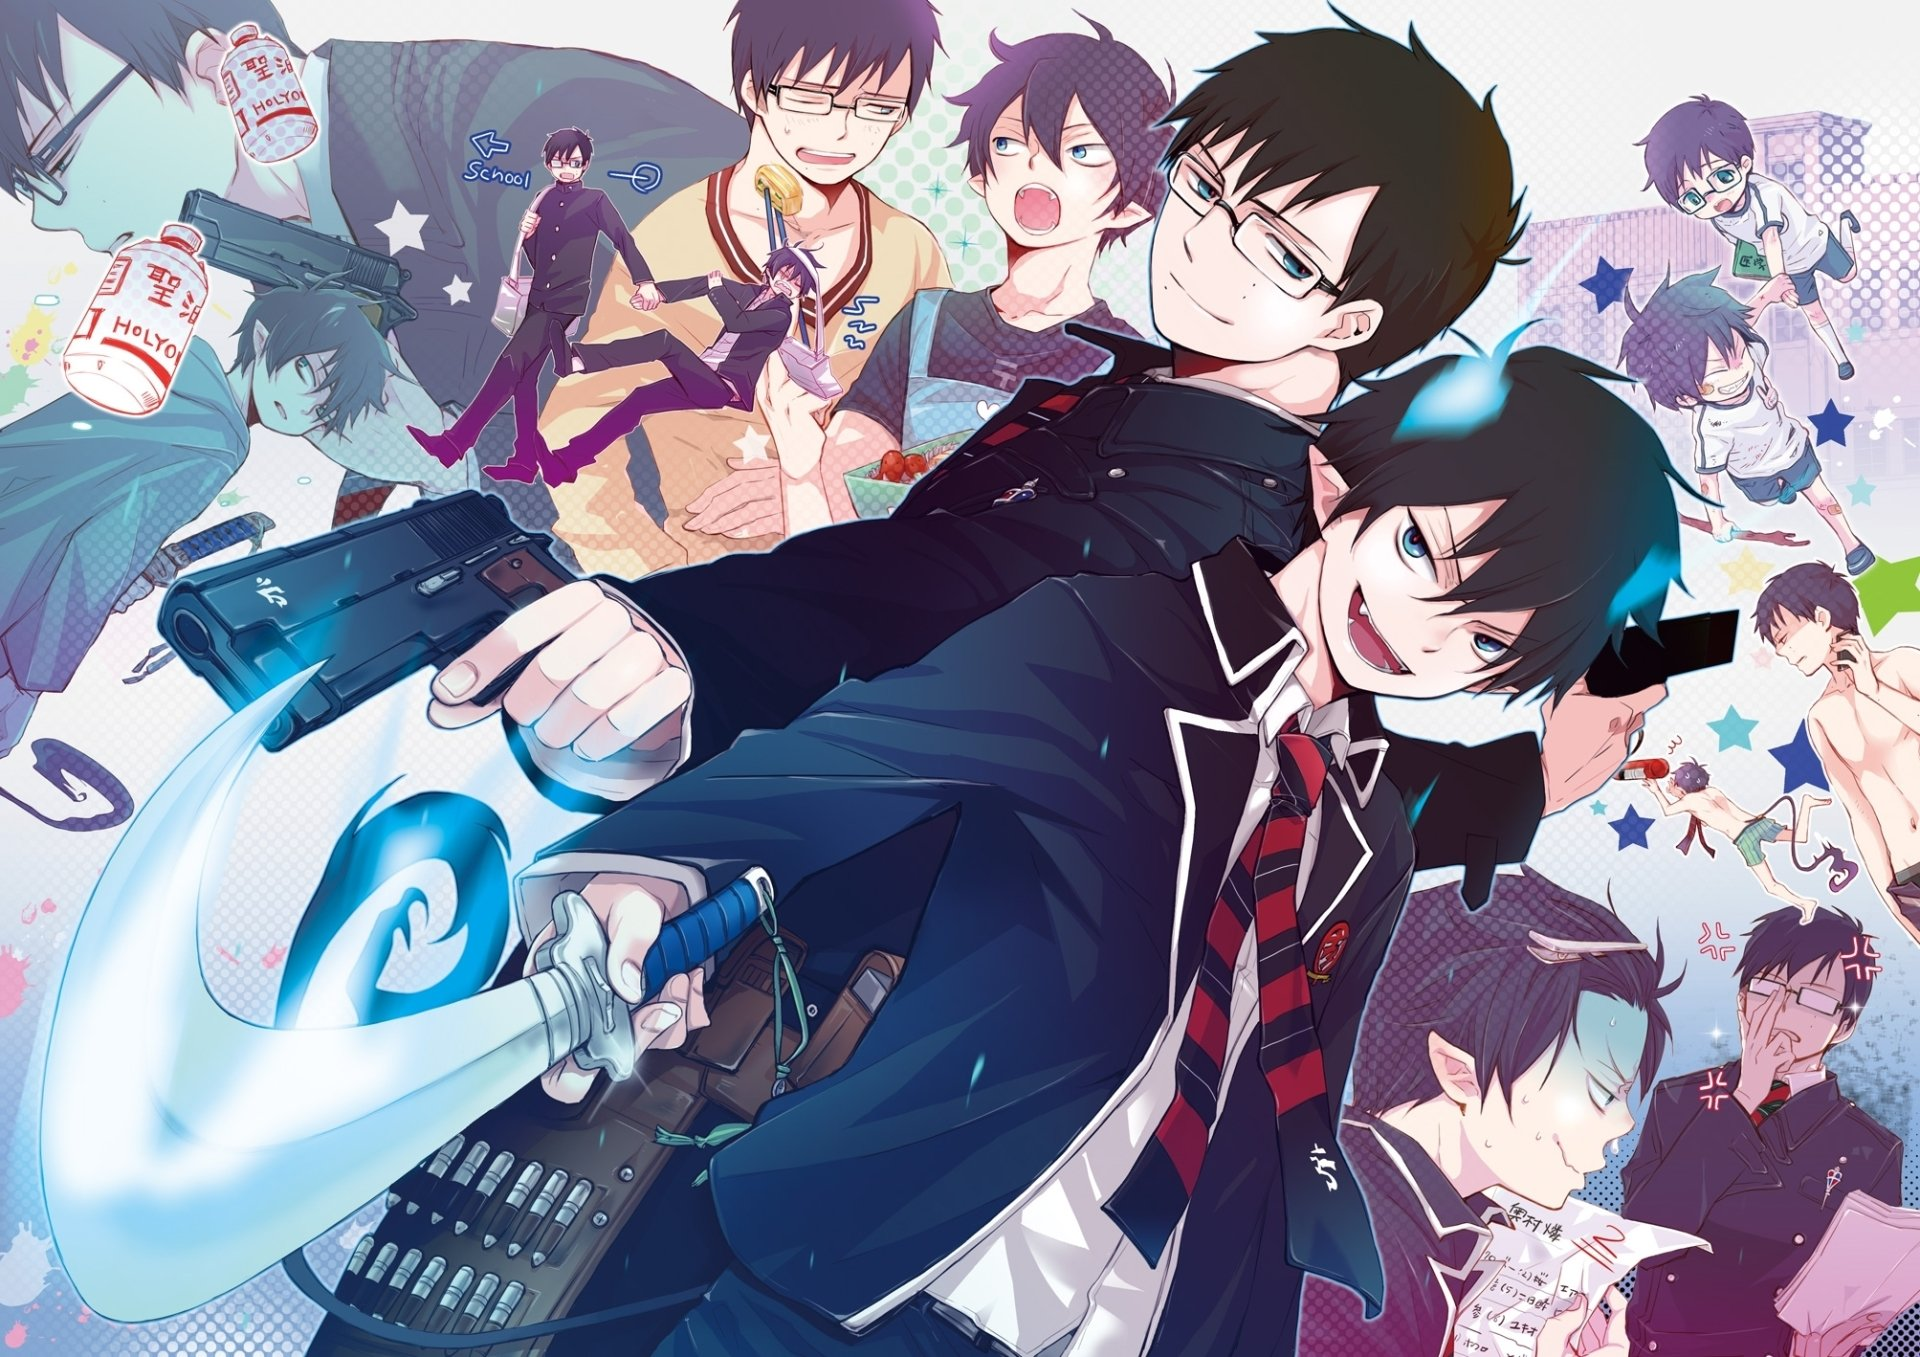 Anime - Blue Exorcist  Ao No Exorcist Rin Okumura Yukio Okumura Kurikara (Blue Exorcist) Blue Hair Blue Eyes Wallpaper